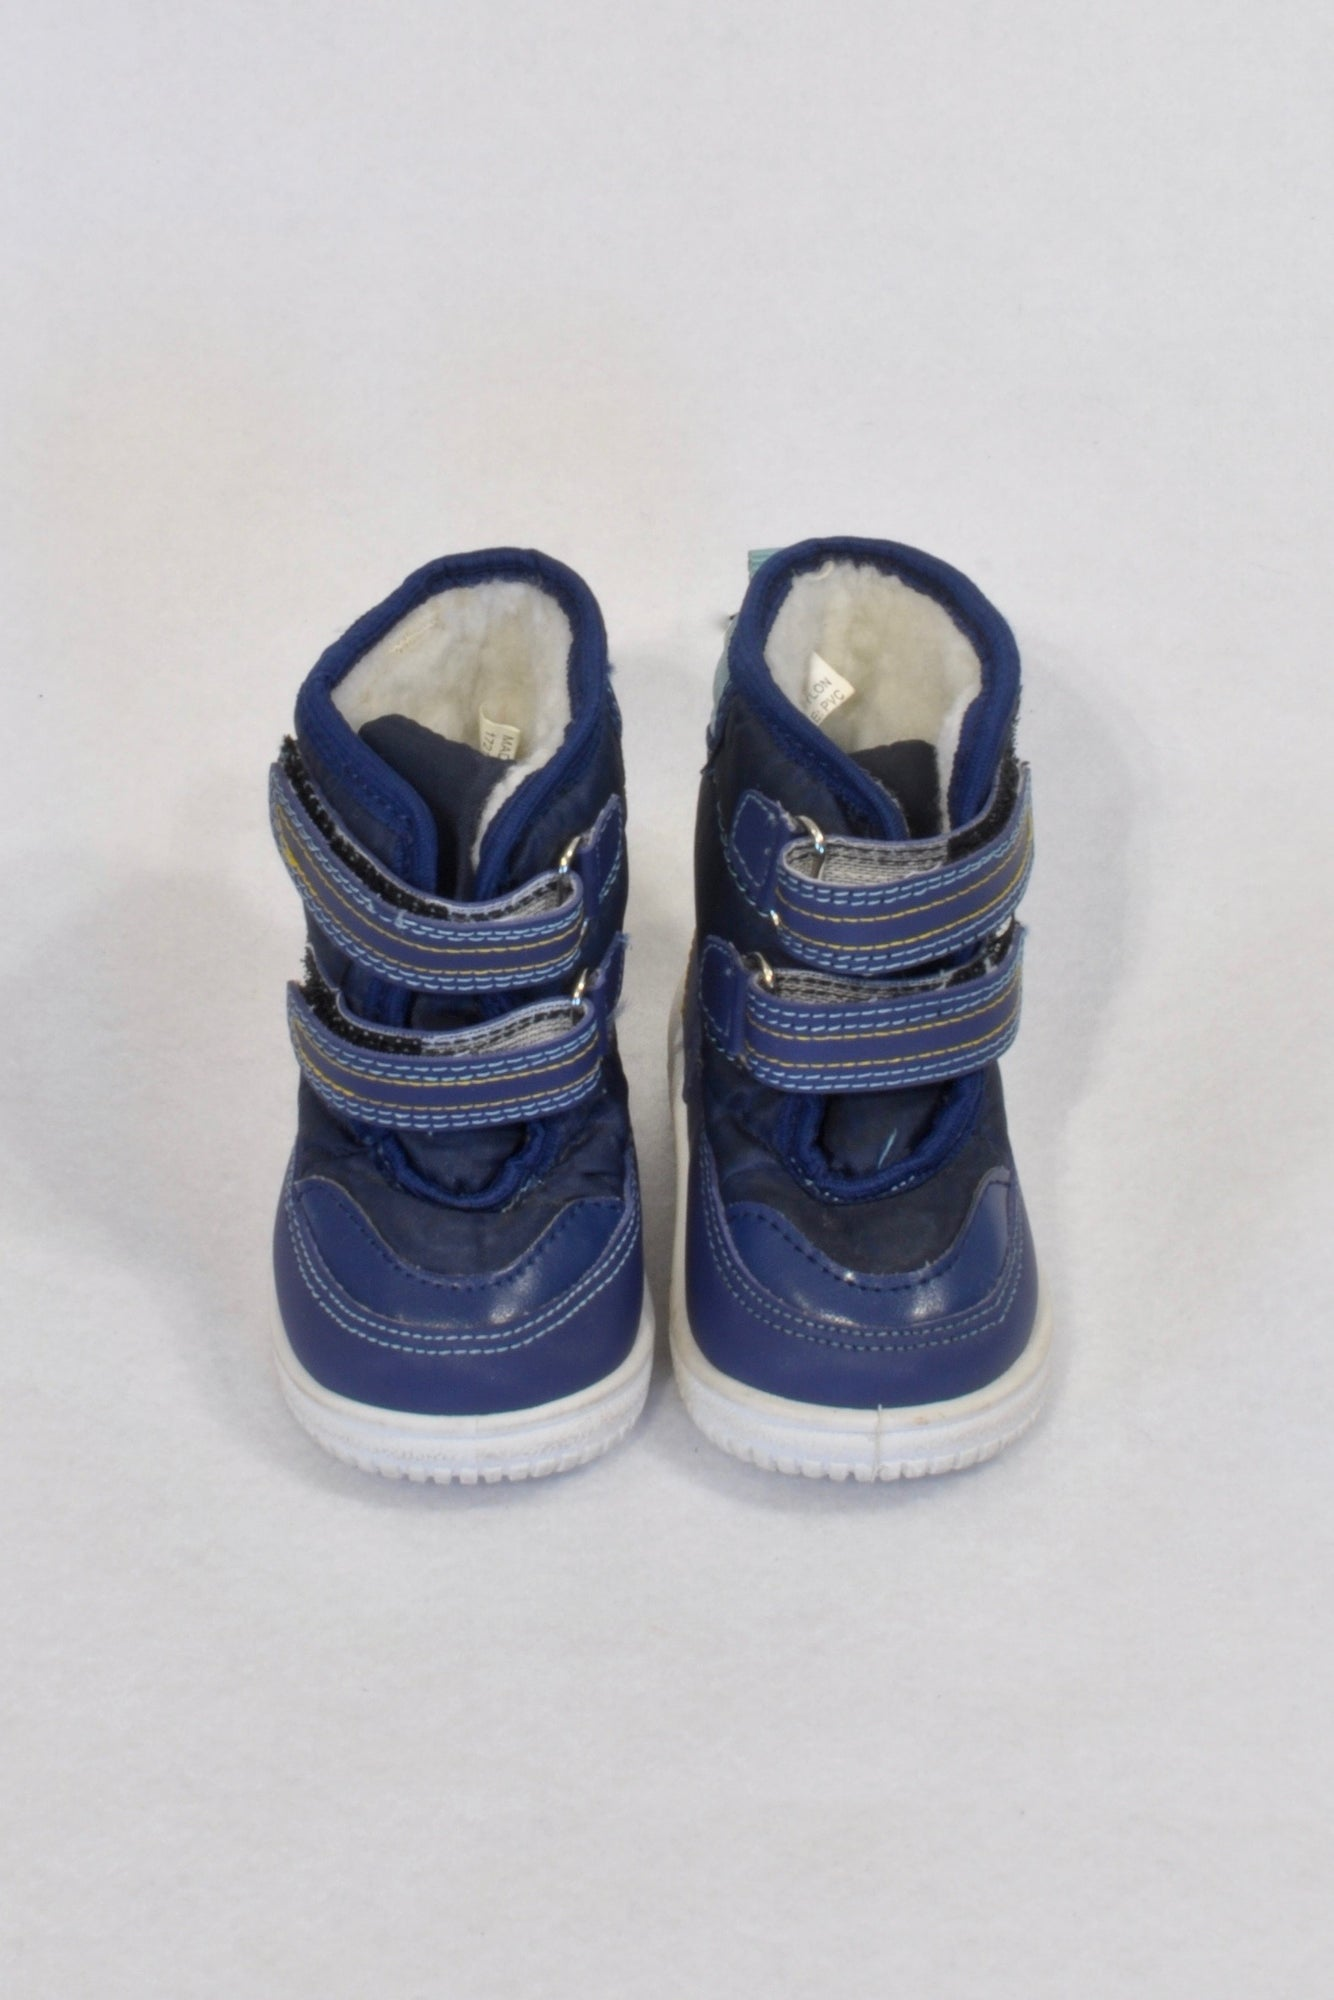 Size 1 Blue Fleece Lined Velcro Boots Boys 3-6 months